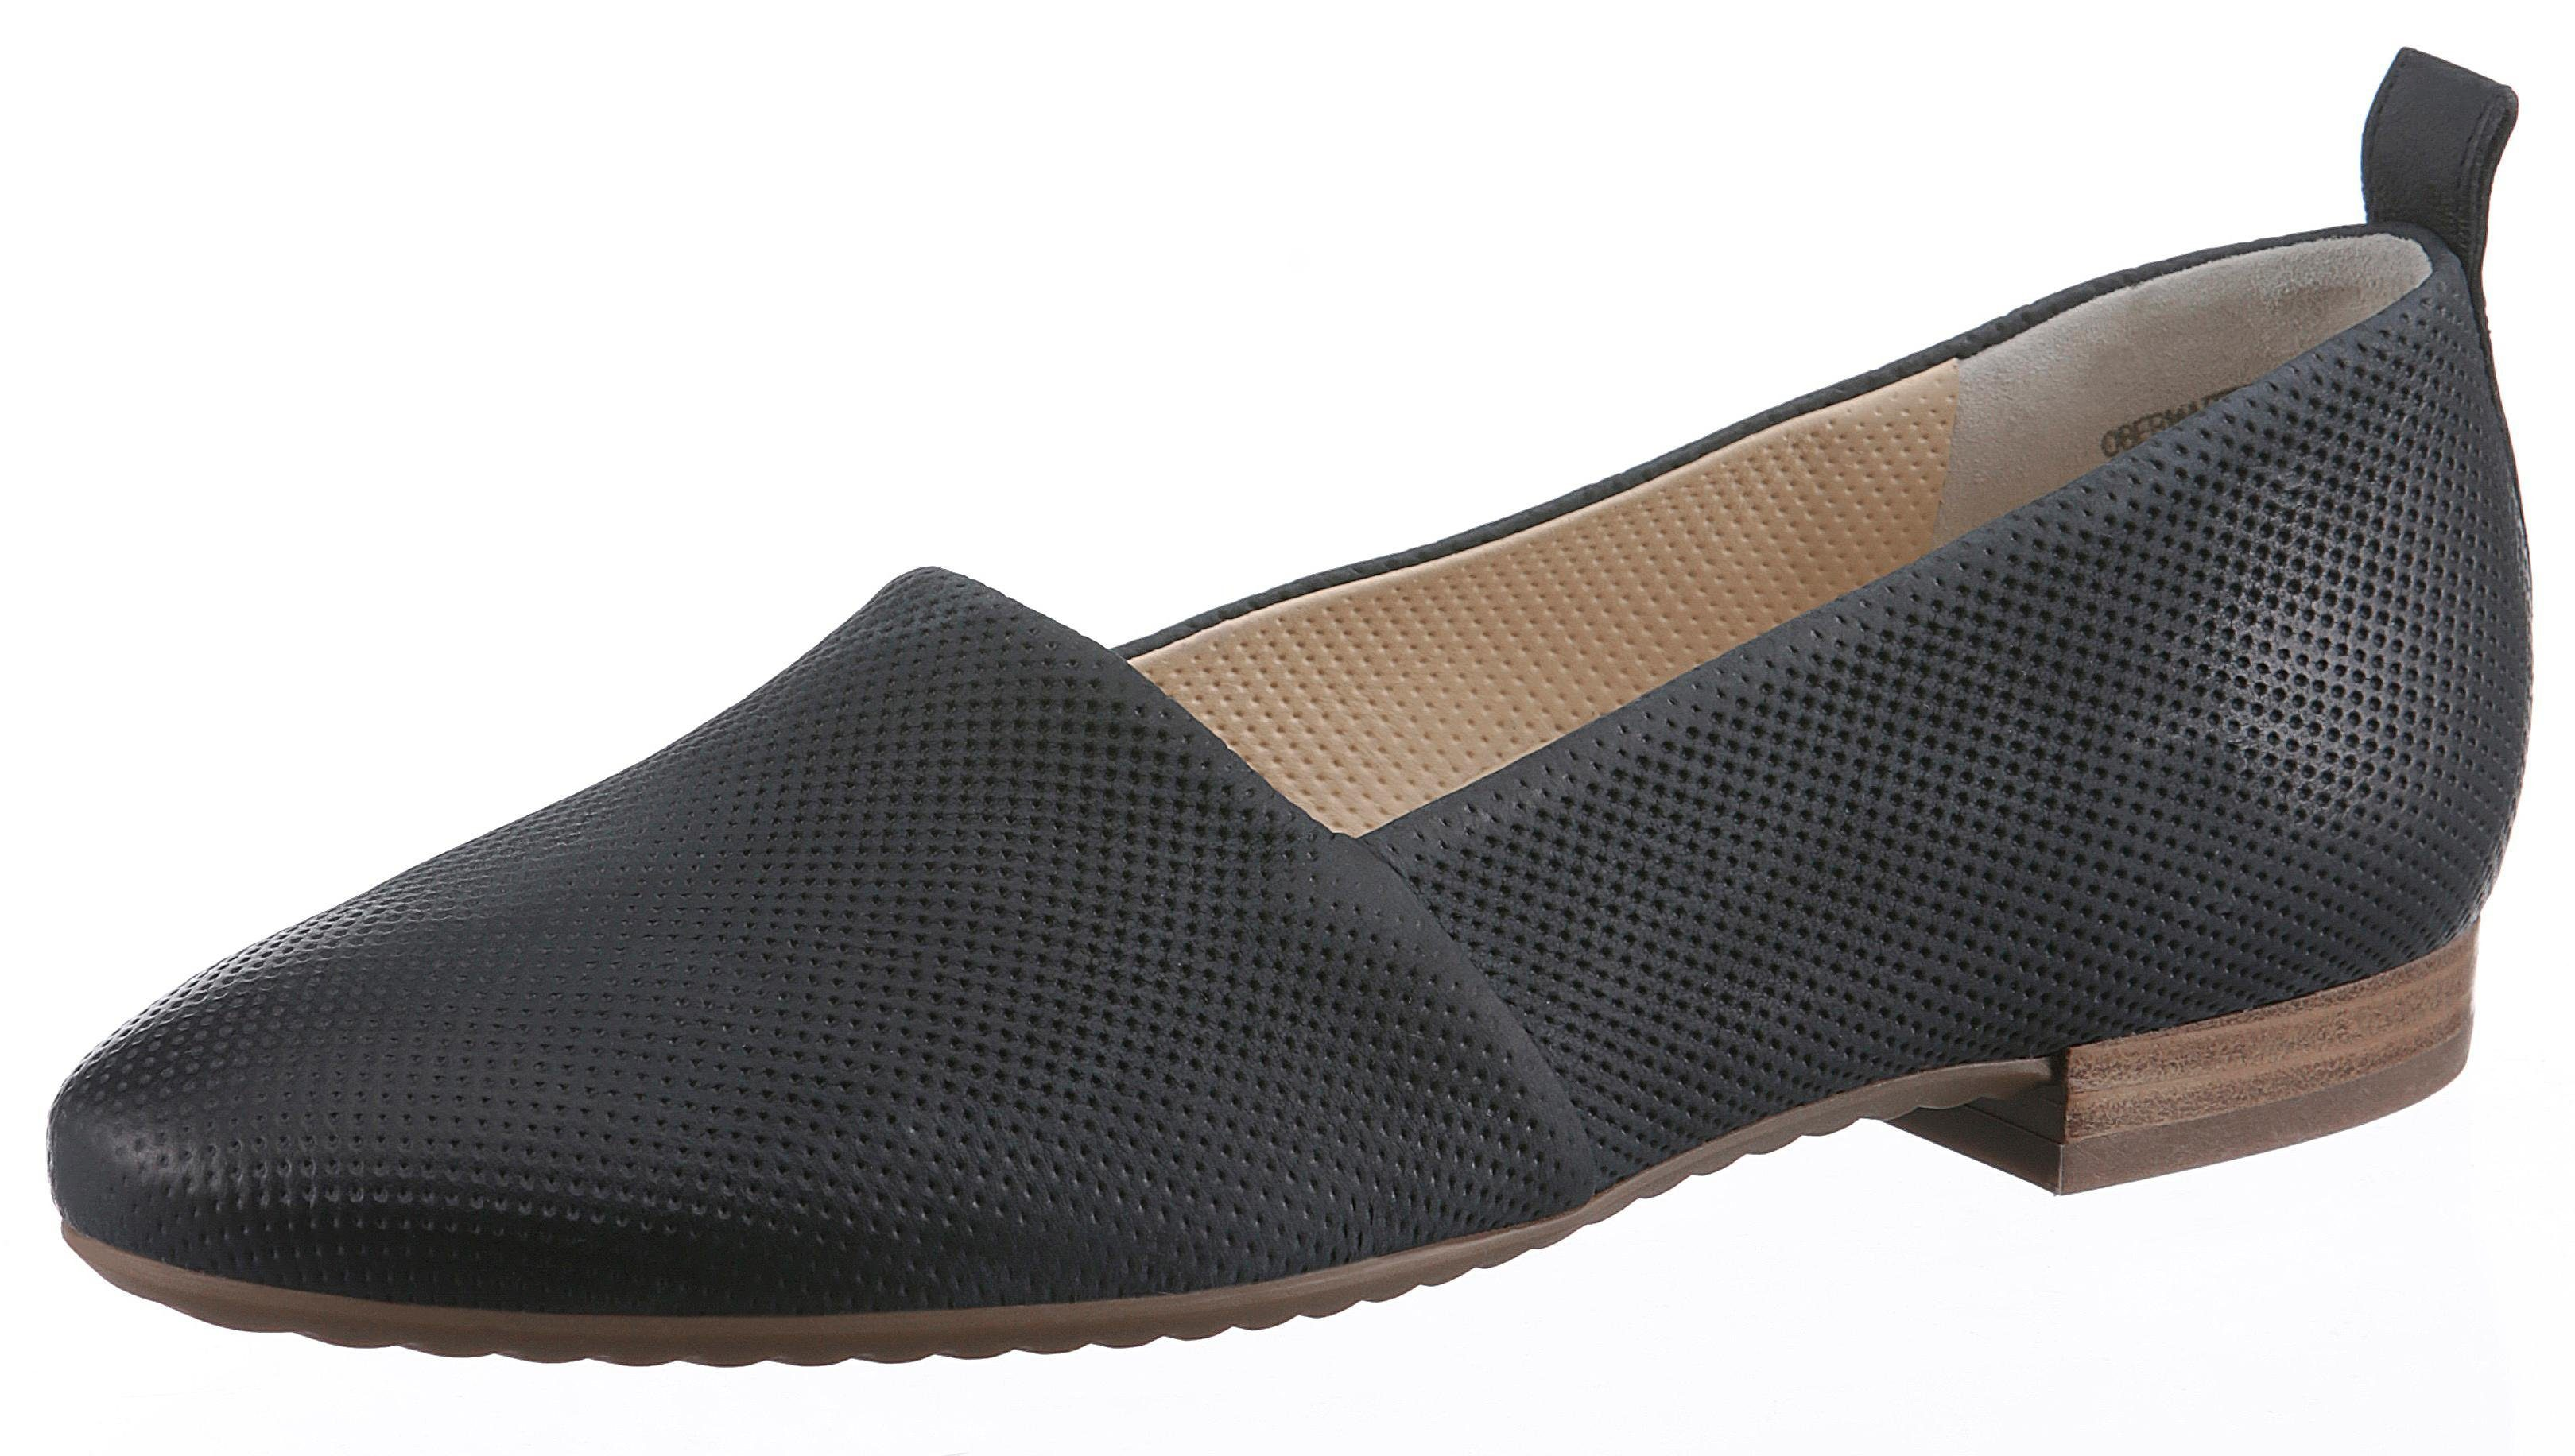 Paul Green Slipper, mit feiner Perforation kaufen  dunkelblau